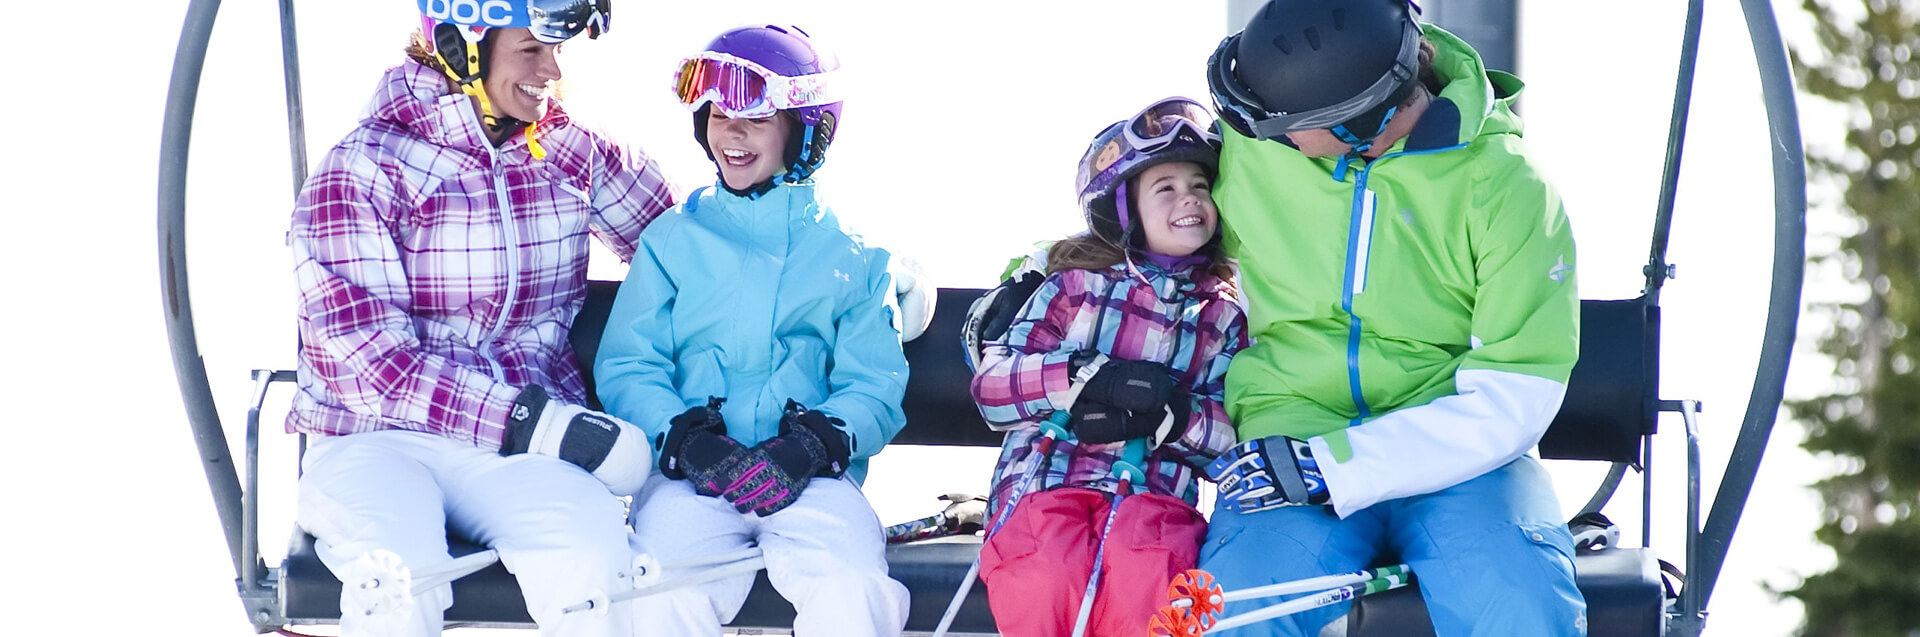 Family on Ski Lift in Pagosa Springs, Colorado